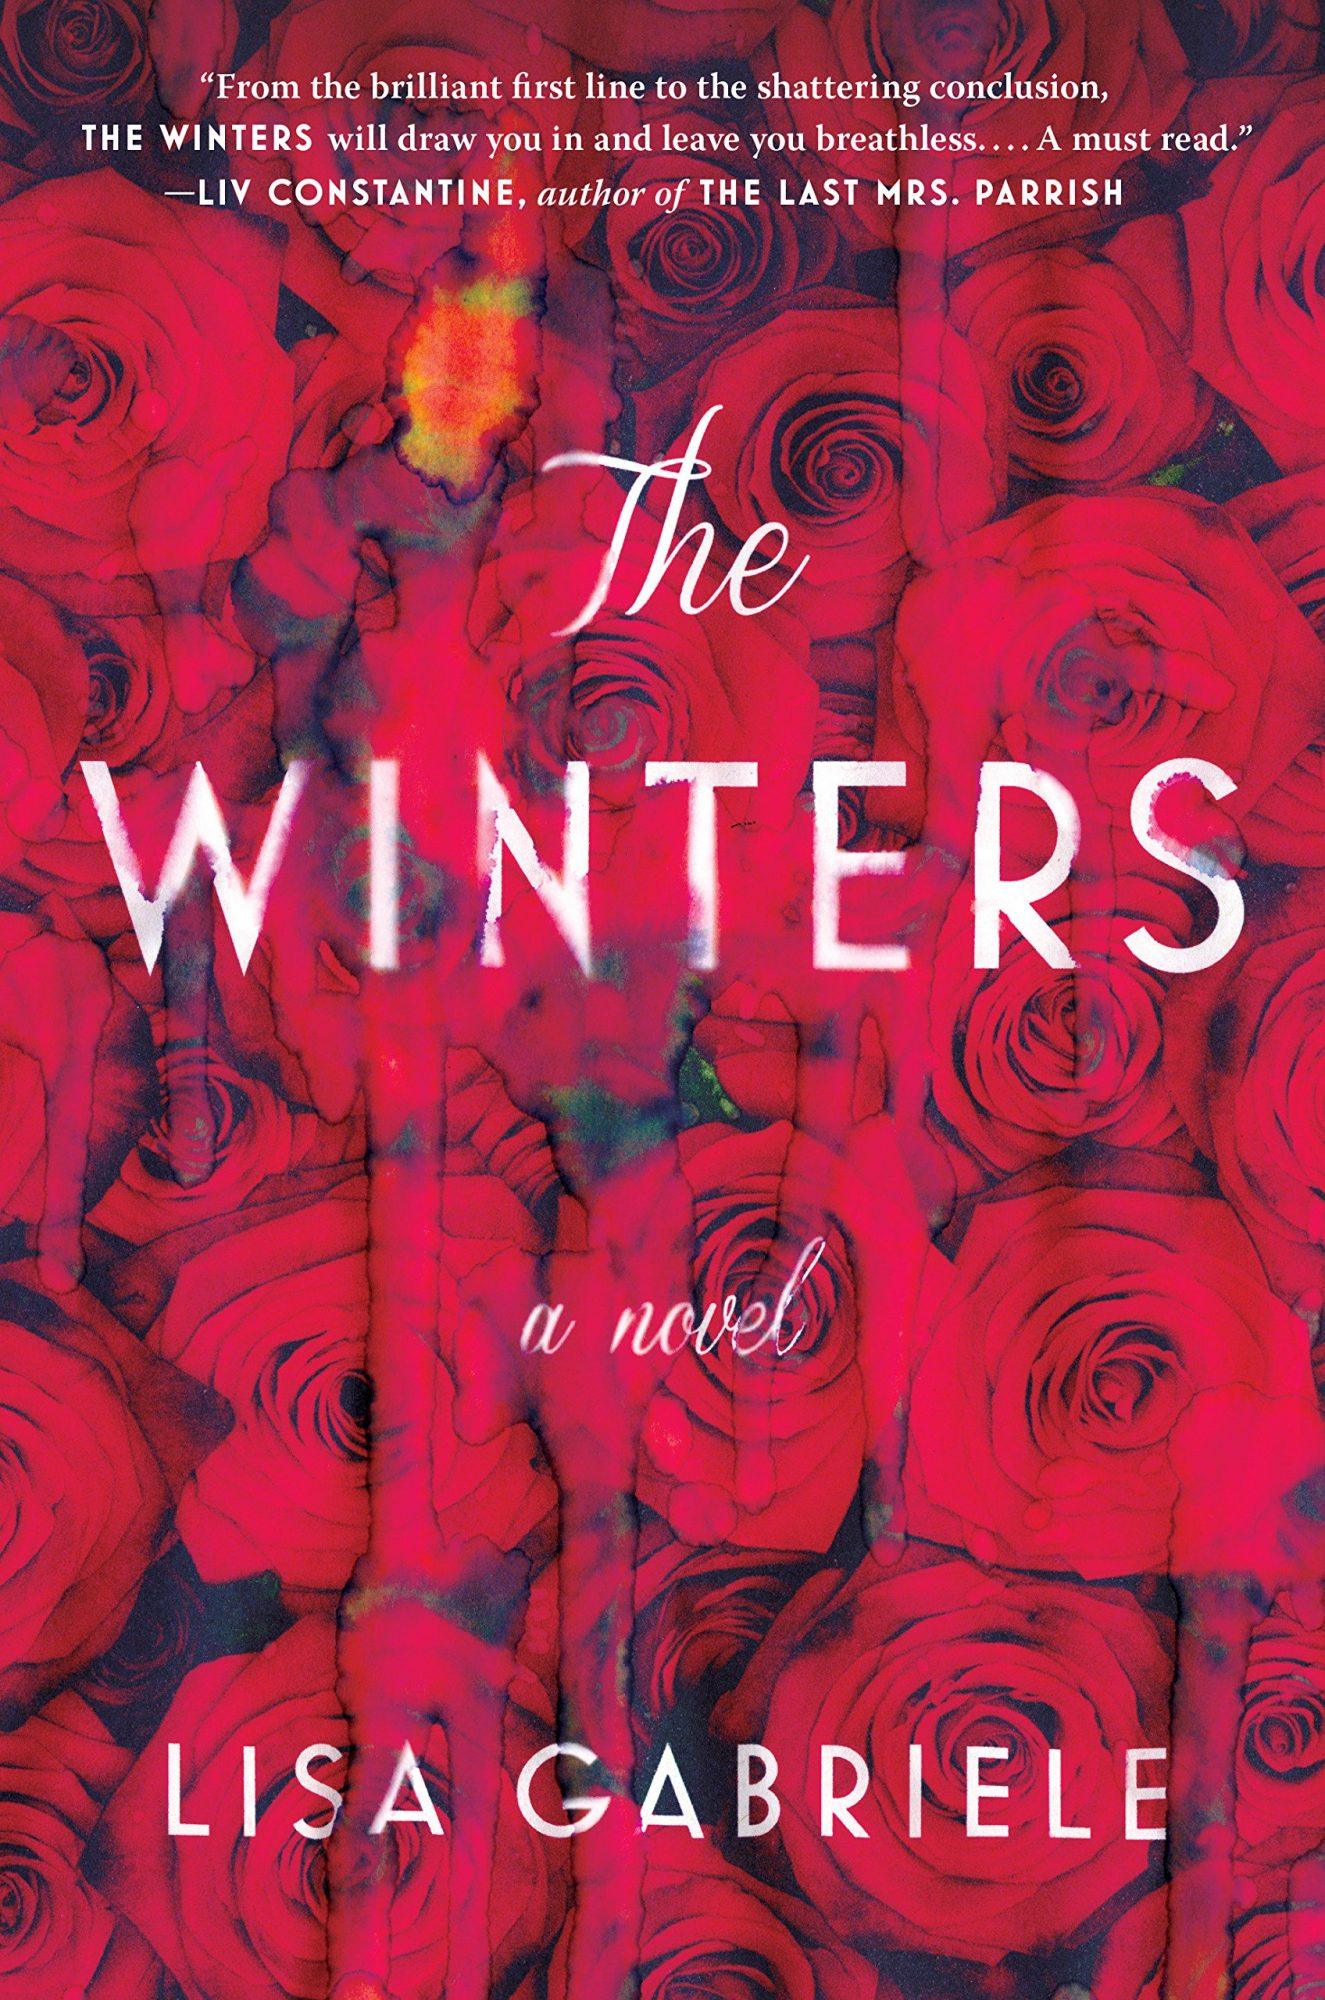 The Winters: A Novel by Lisa Gabriele